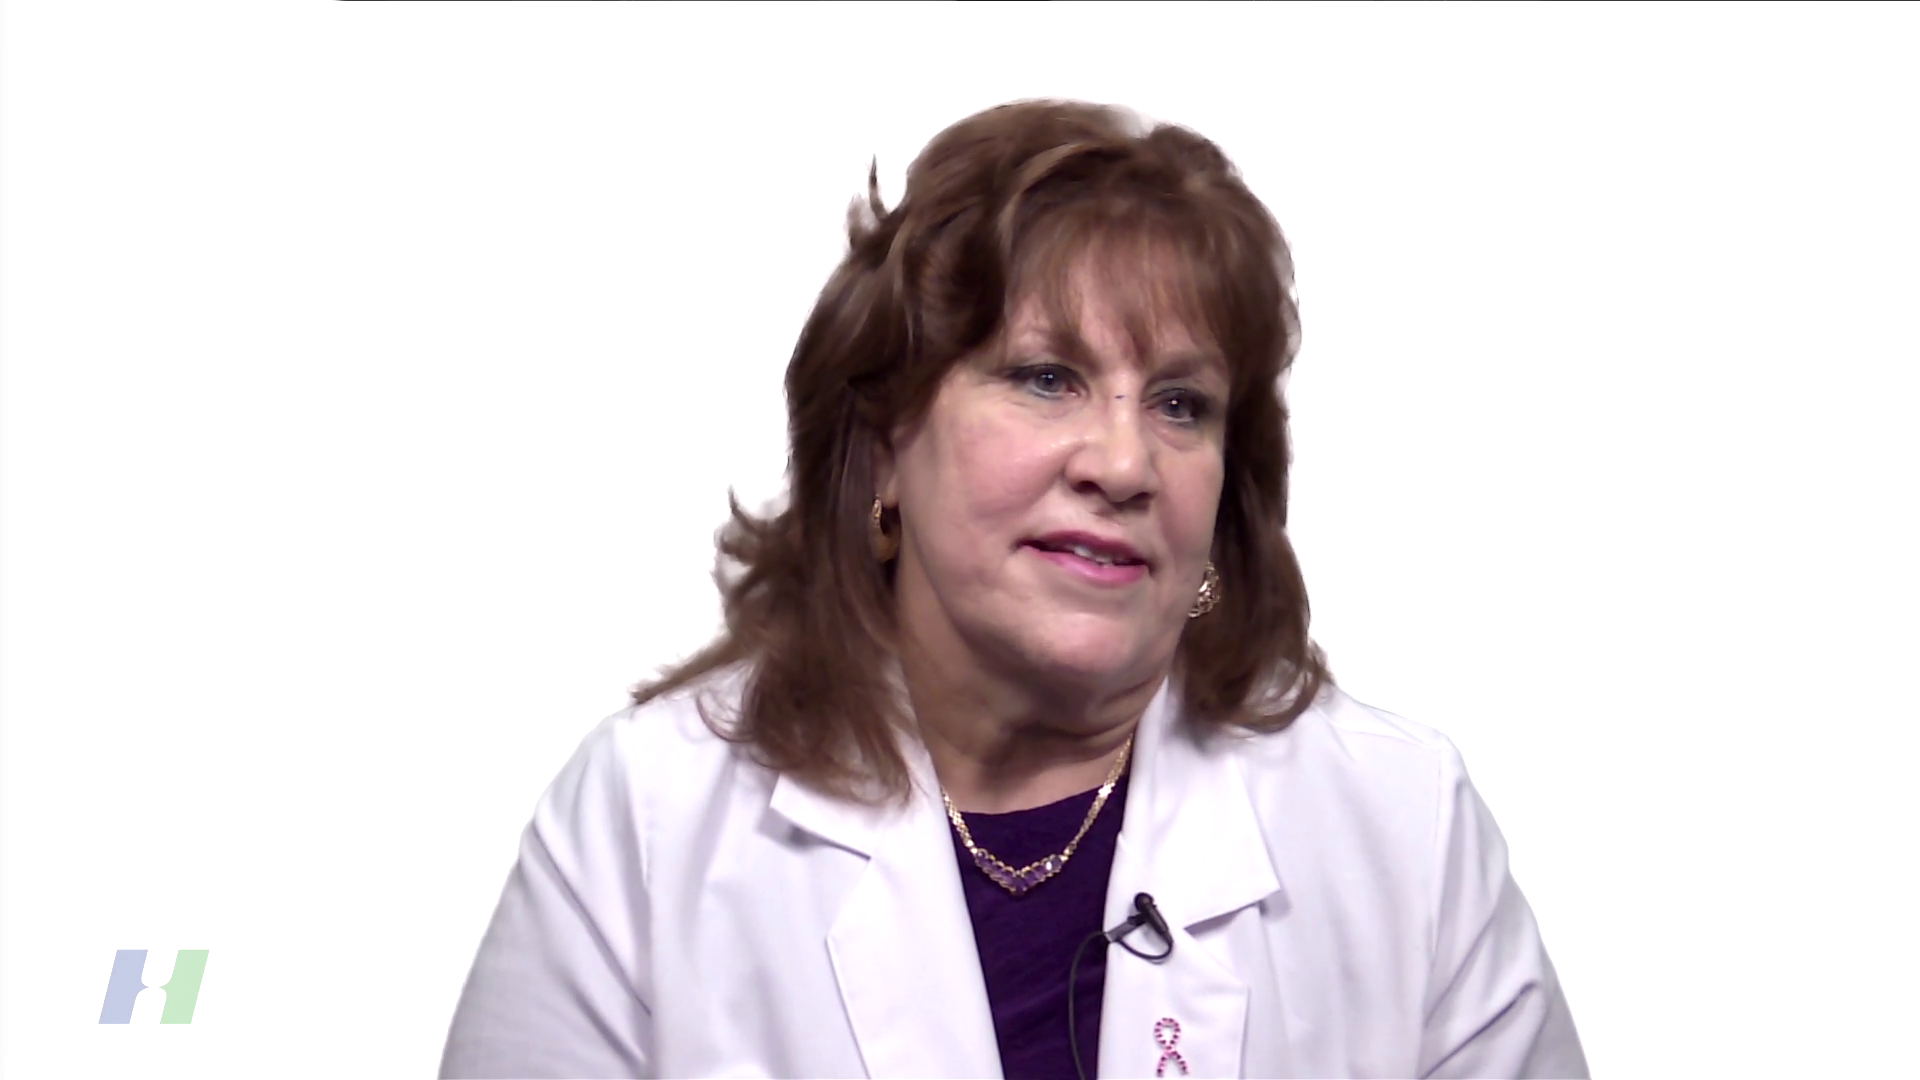 Dr. Warden talks about her practice